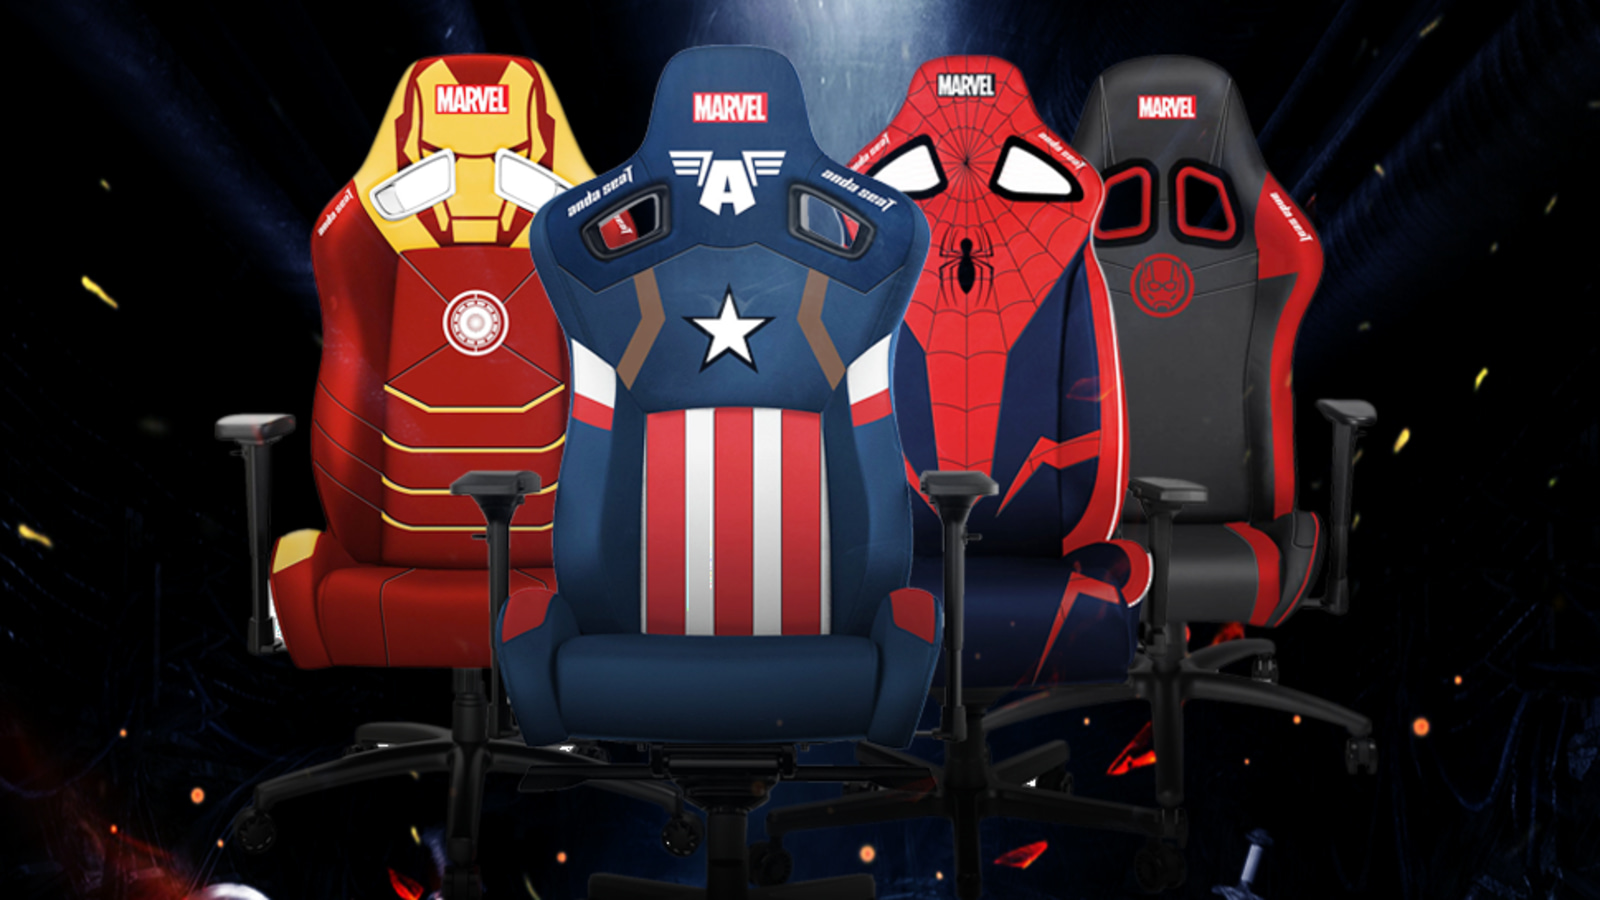 Take 50% off the AndaSeat Marvel Series gaming chairs